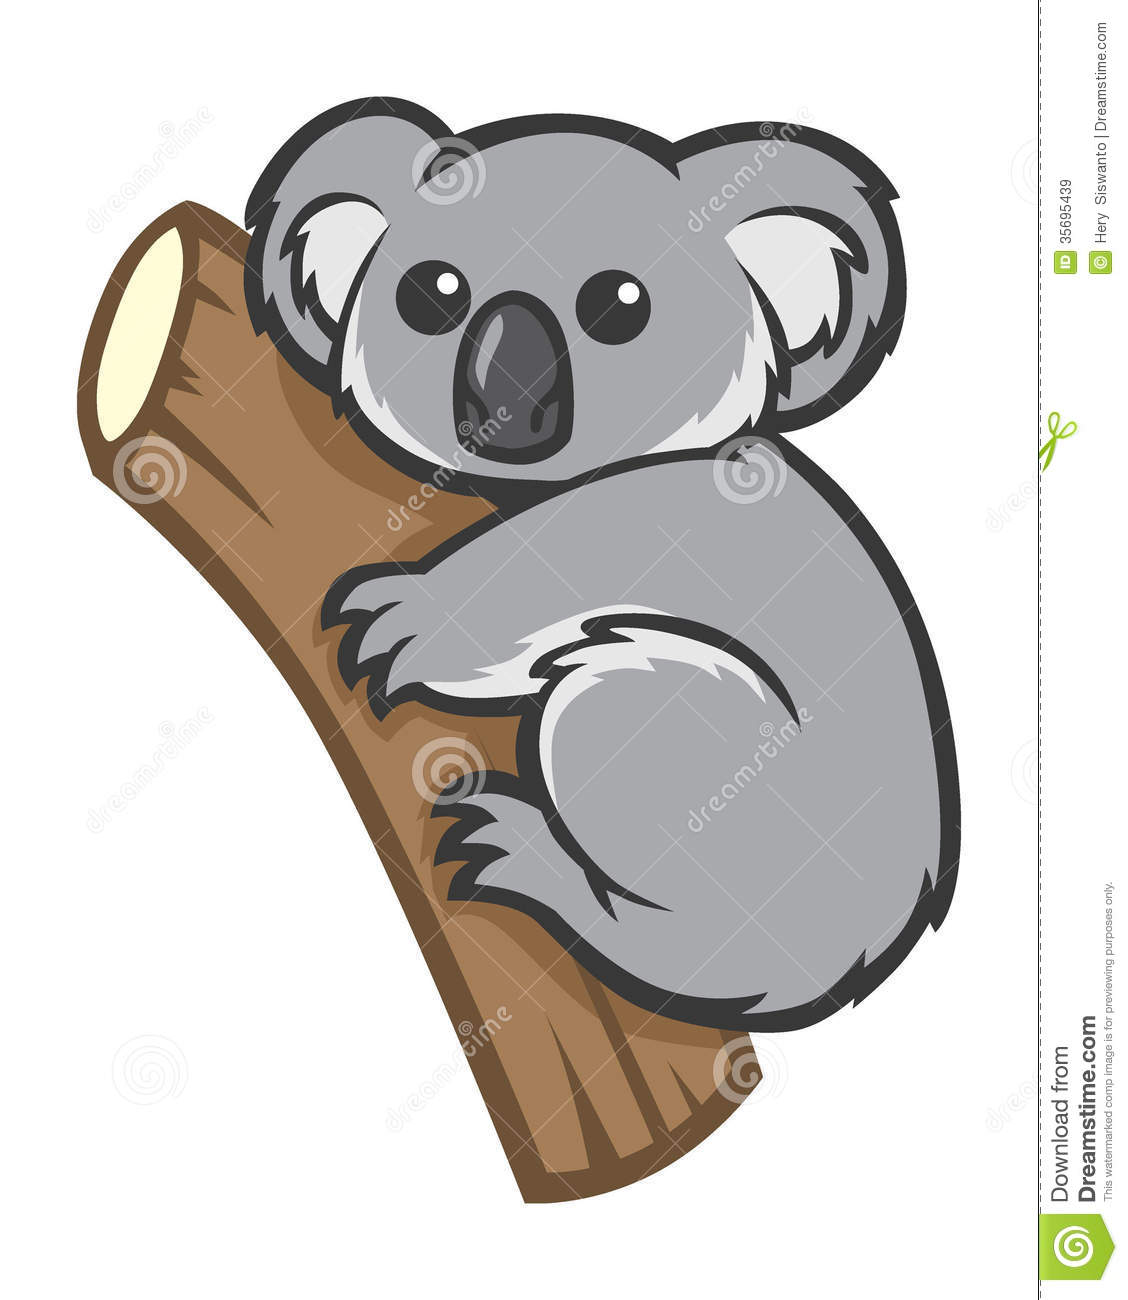 Cute Koala On A Tree Royalty Free Stock Images   Image  35695439